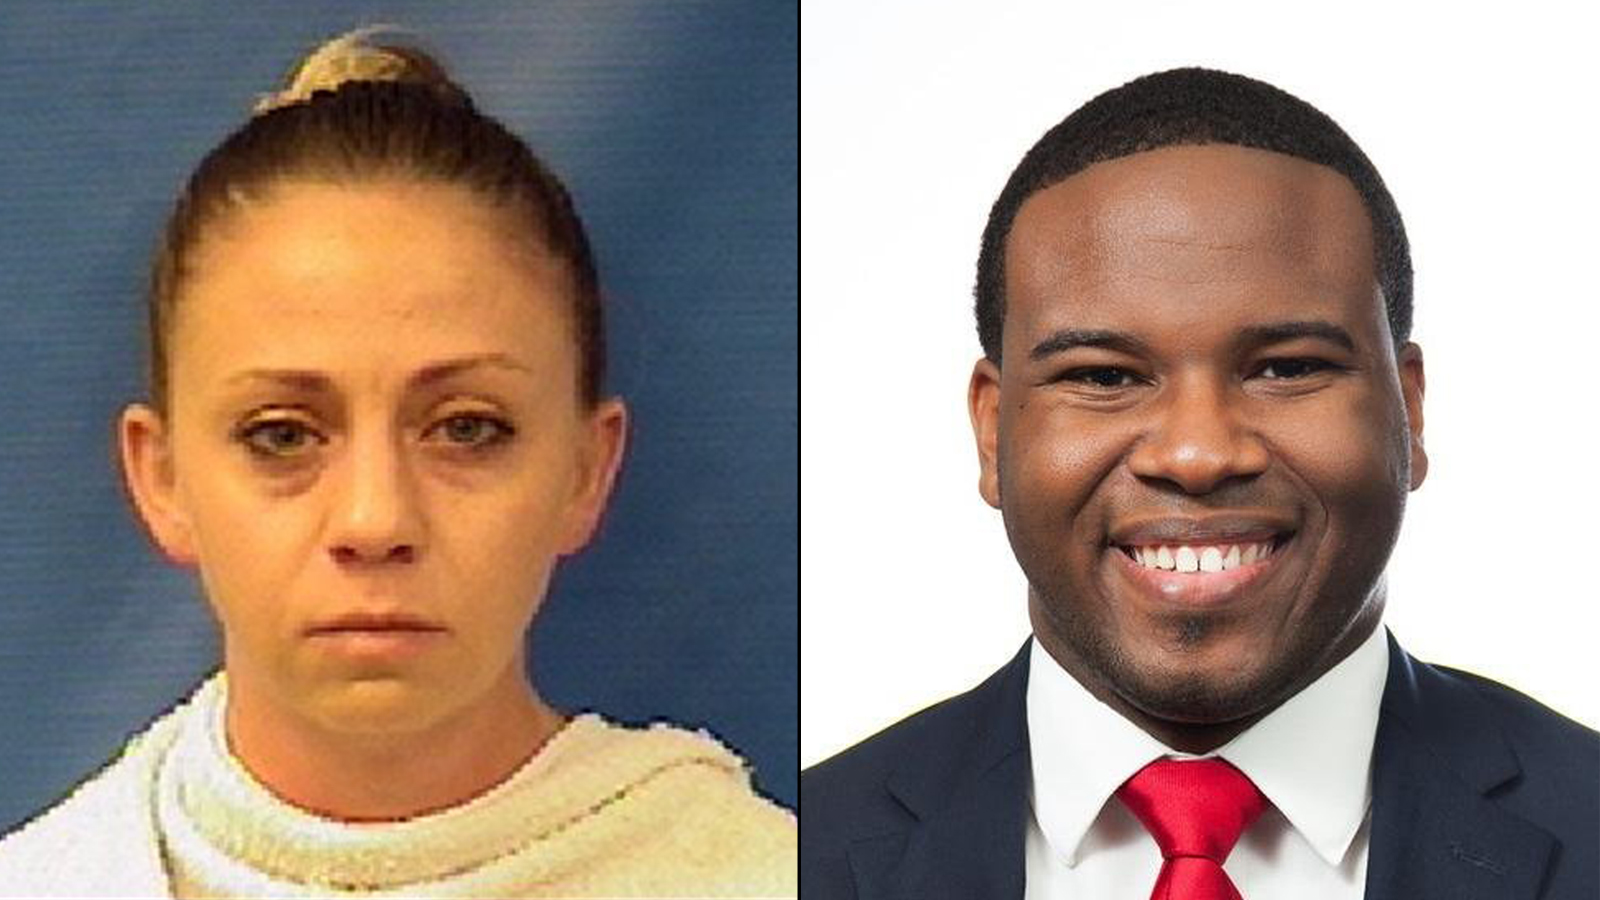 Attorneys for former Dallas police officer Amber Guyger file appeal in Botham Jean murder case